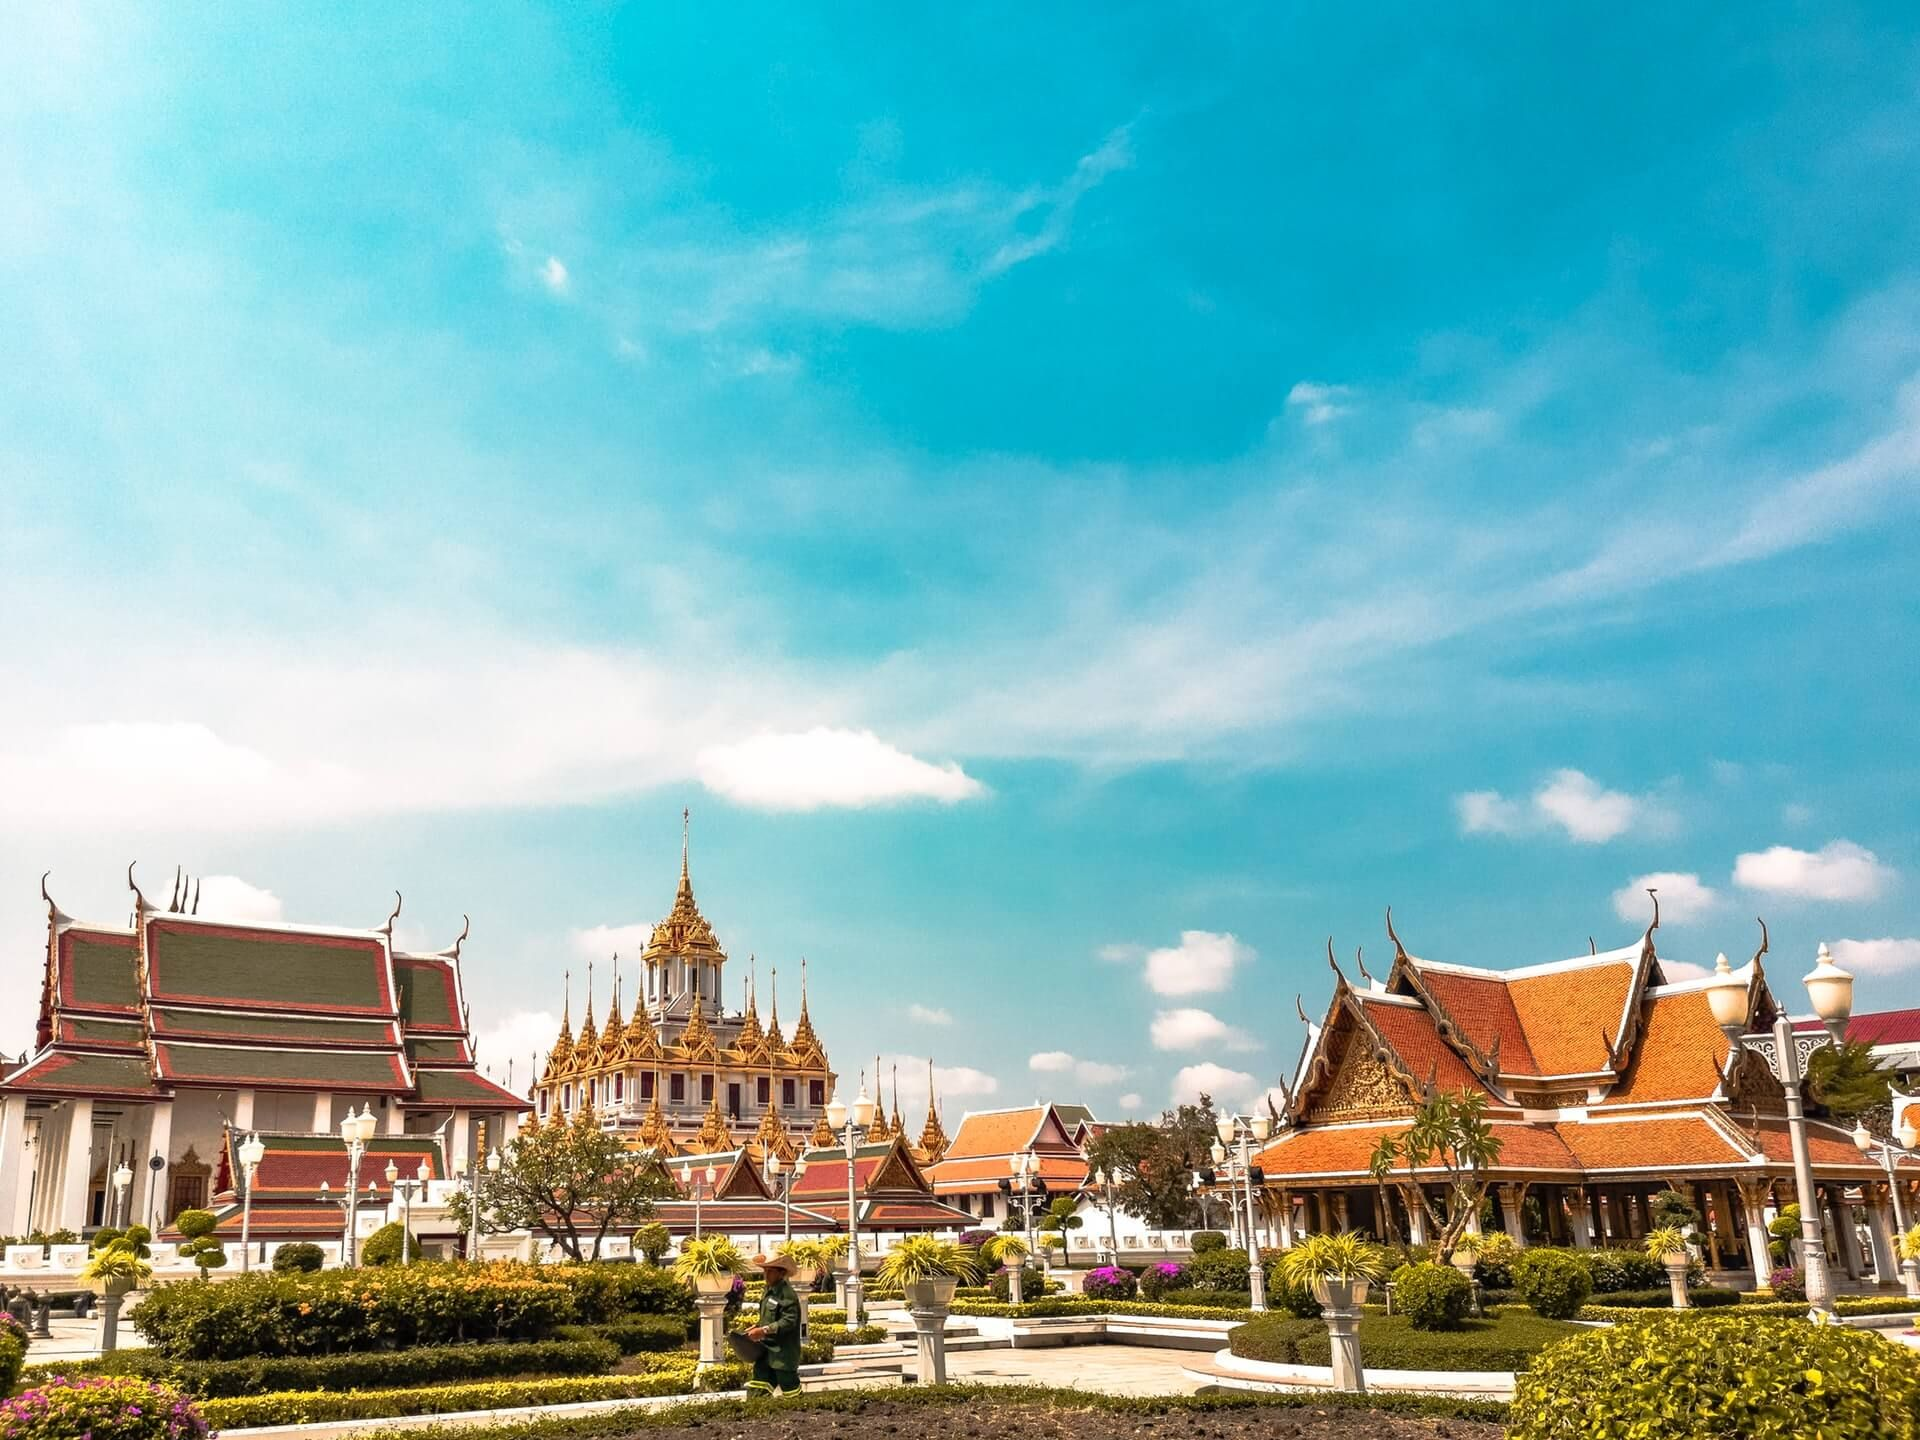 Laho Prasat in Bangkok, Thailand - orange temples in the daytime